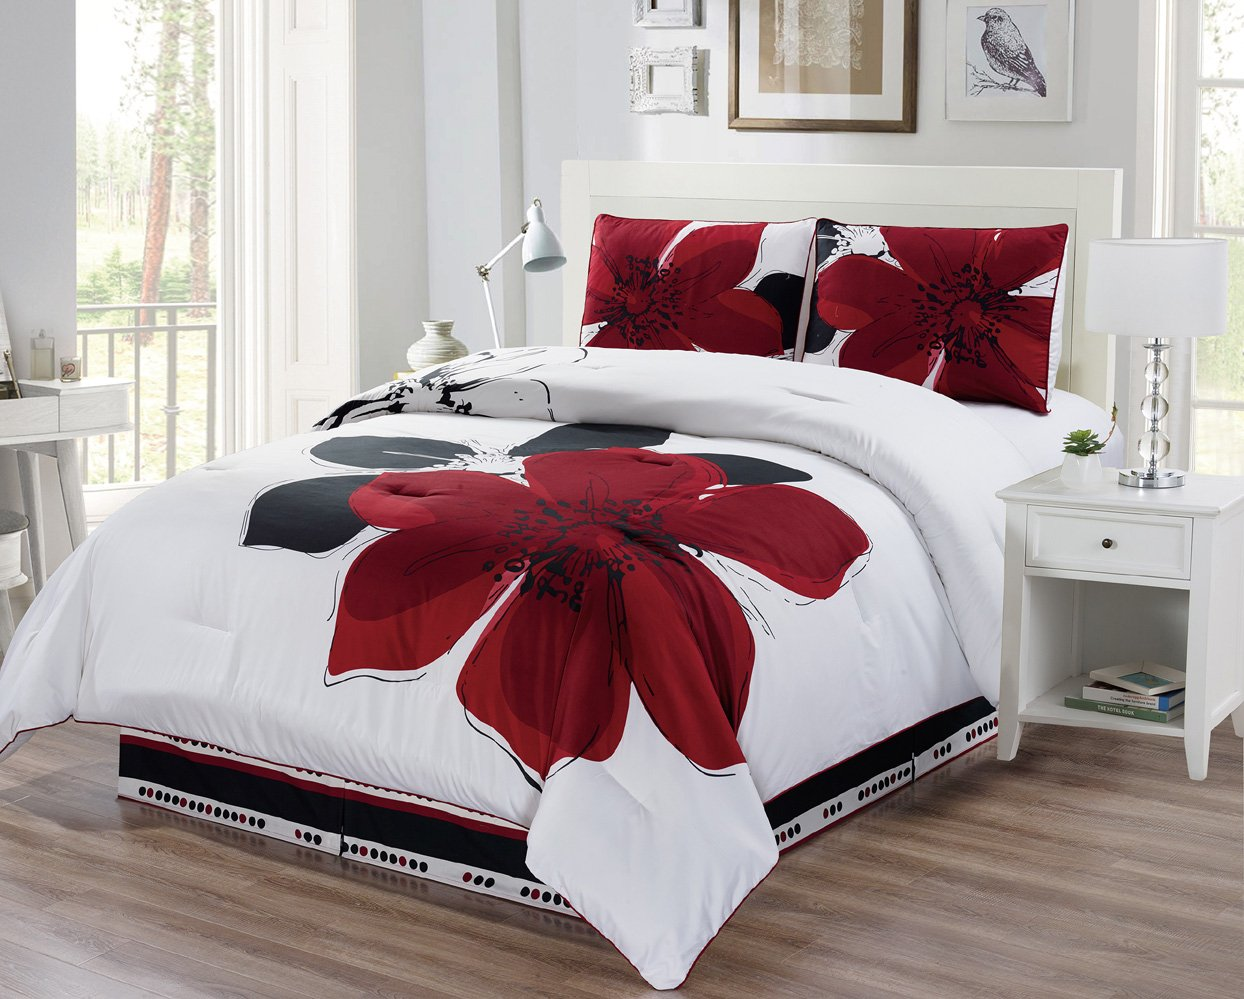 4-Piece Fine printed Comforter Set Reversible Goose Down Alternative Bedding KING (Burgundy Red, Black, White, Grey